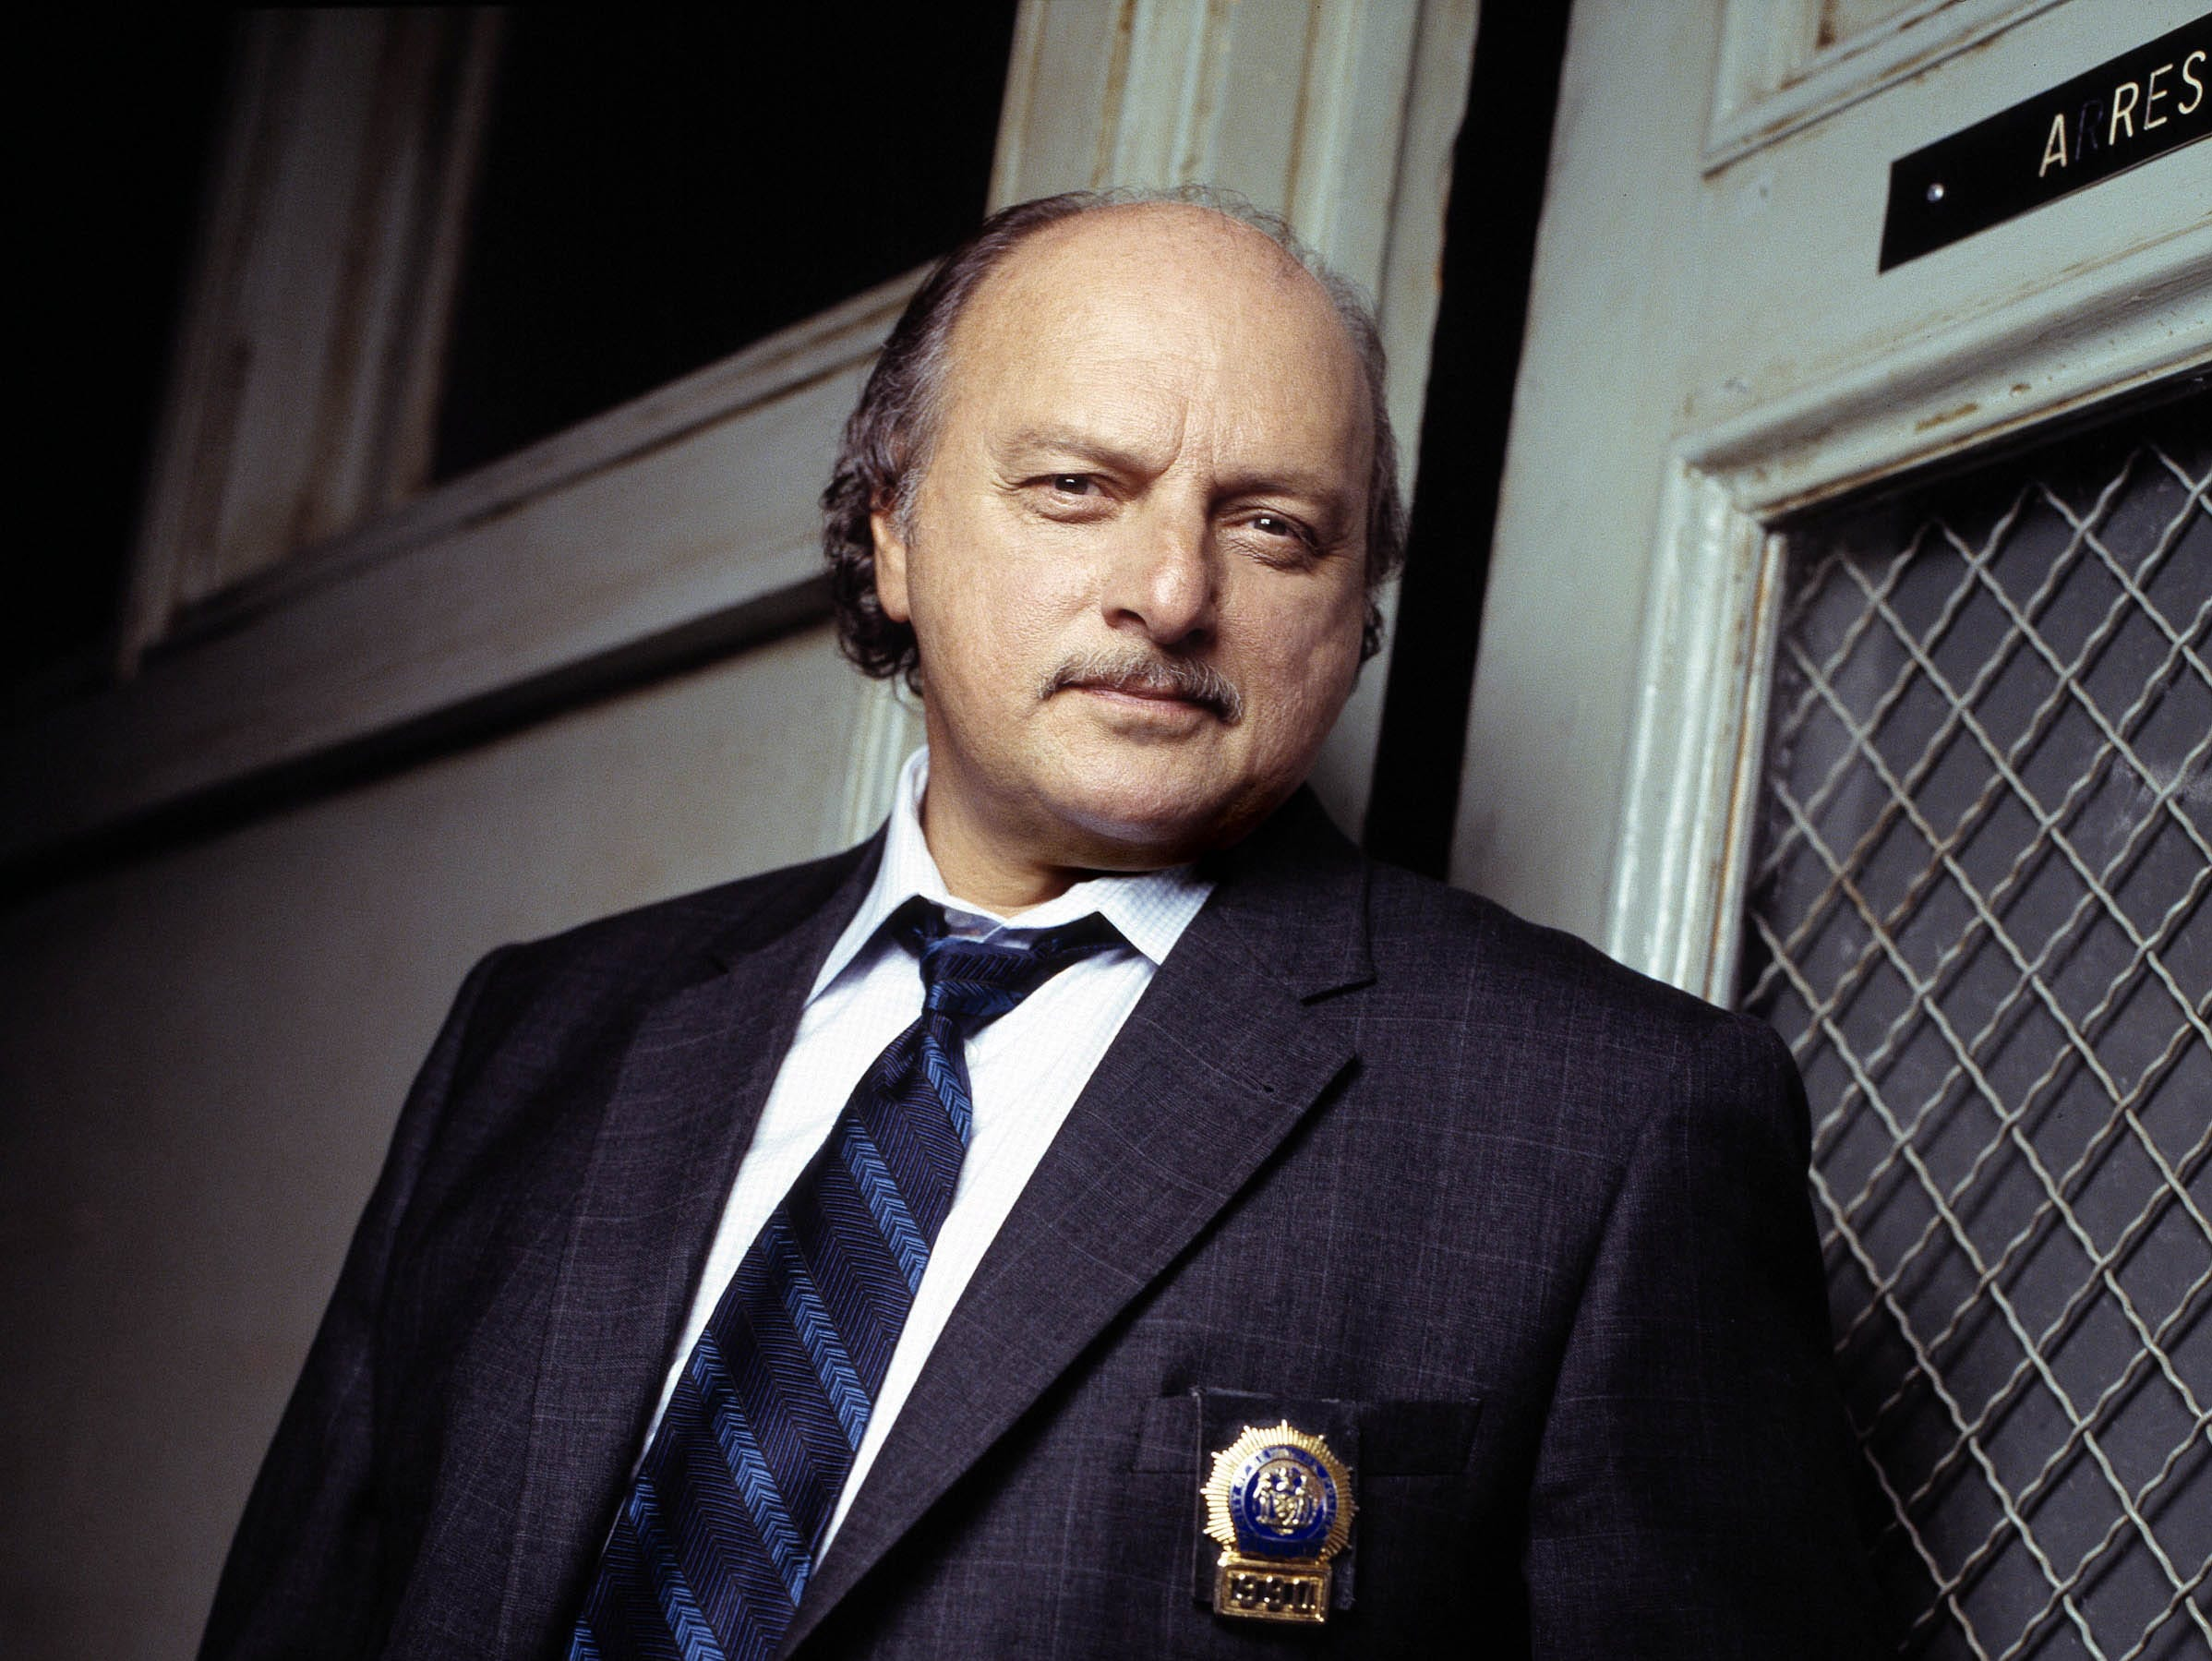 "DENNIS FRANZ of NYPD BLUE - One of the longest-running and critically acclaimed police dramas in broadcast history, ""NYPD Blue"" is returning for its 11th season. The series airs Tuesdays from 10:00-11:00 p.m., ET.   --- DATE TAKEN: rec'd 09/04  By REISIG & TAYLOR   ABC        HO      - handout   ORG XMIT: ZX26096"